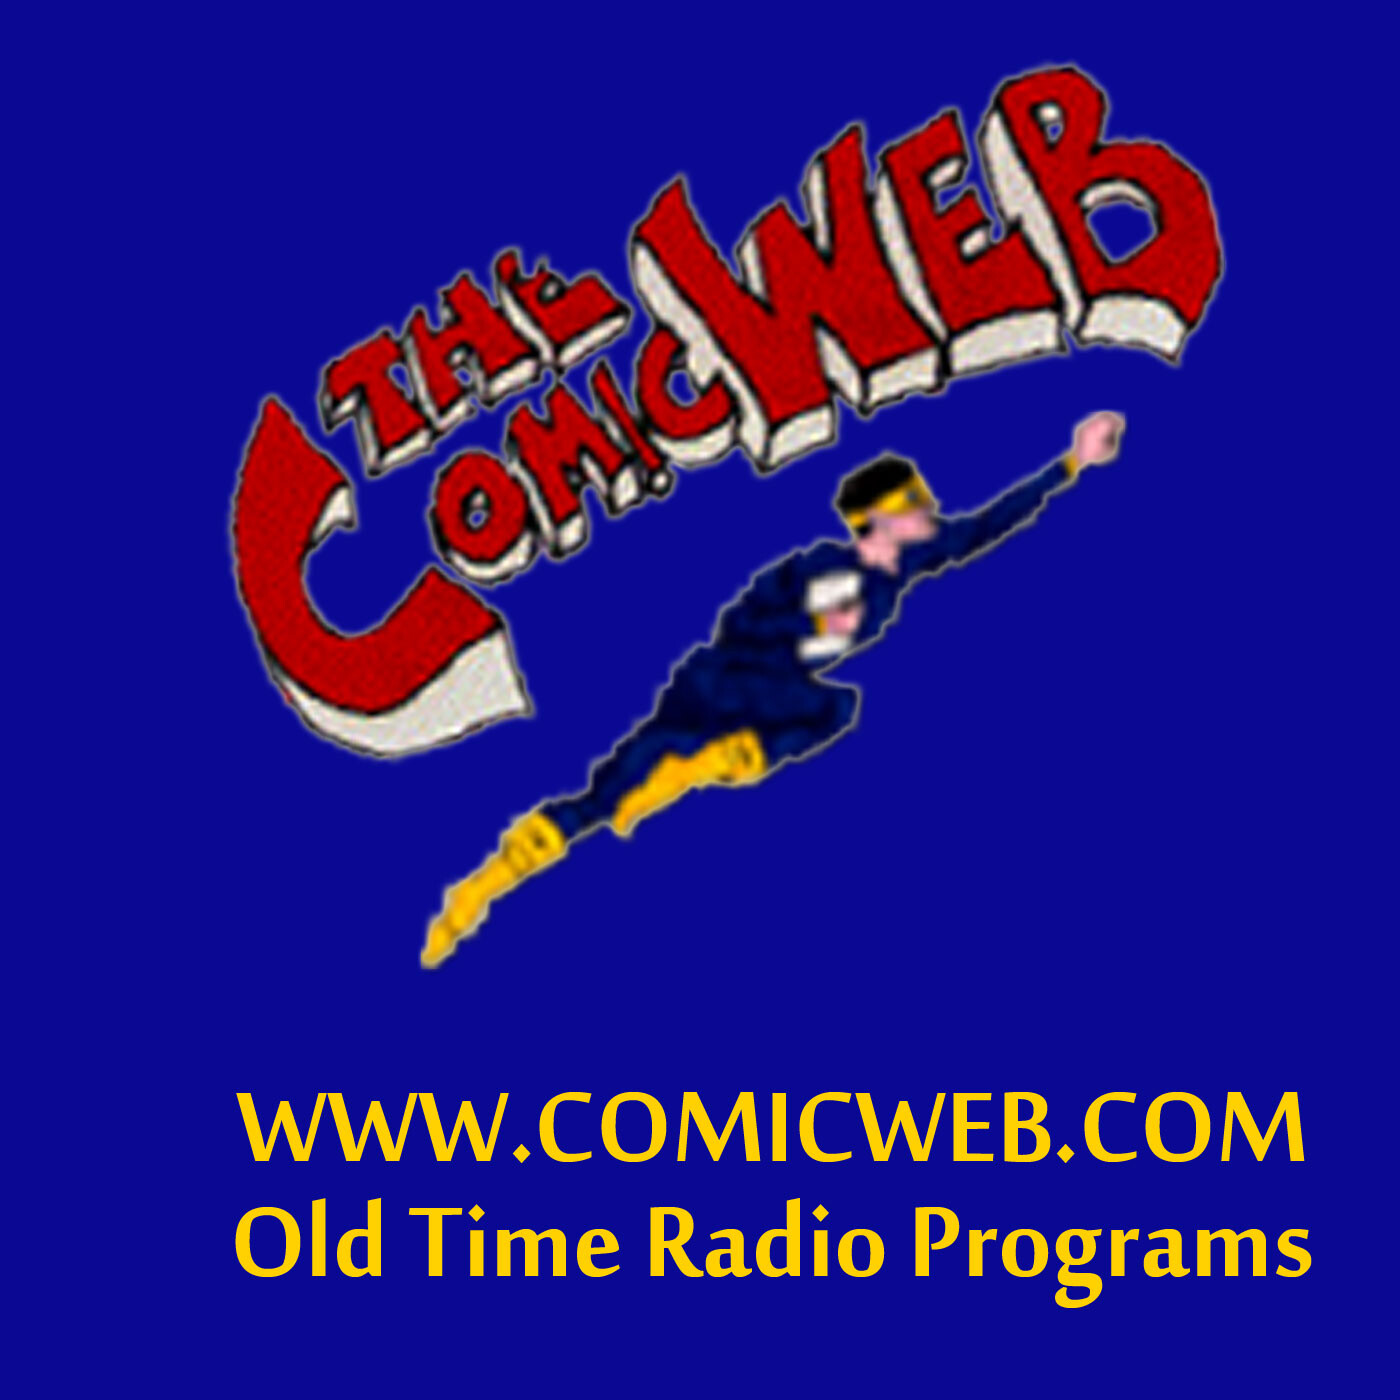 Old Time Radio Program - Lone Ranger: Gold for Maximillian, first aired on 3/27/1944